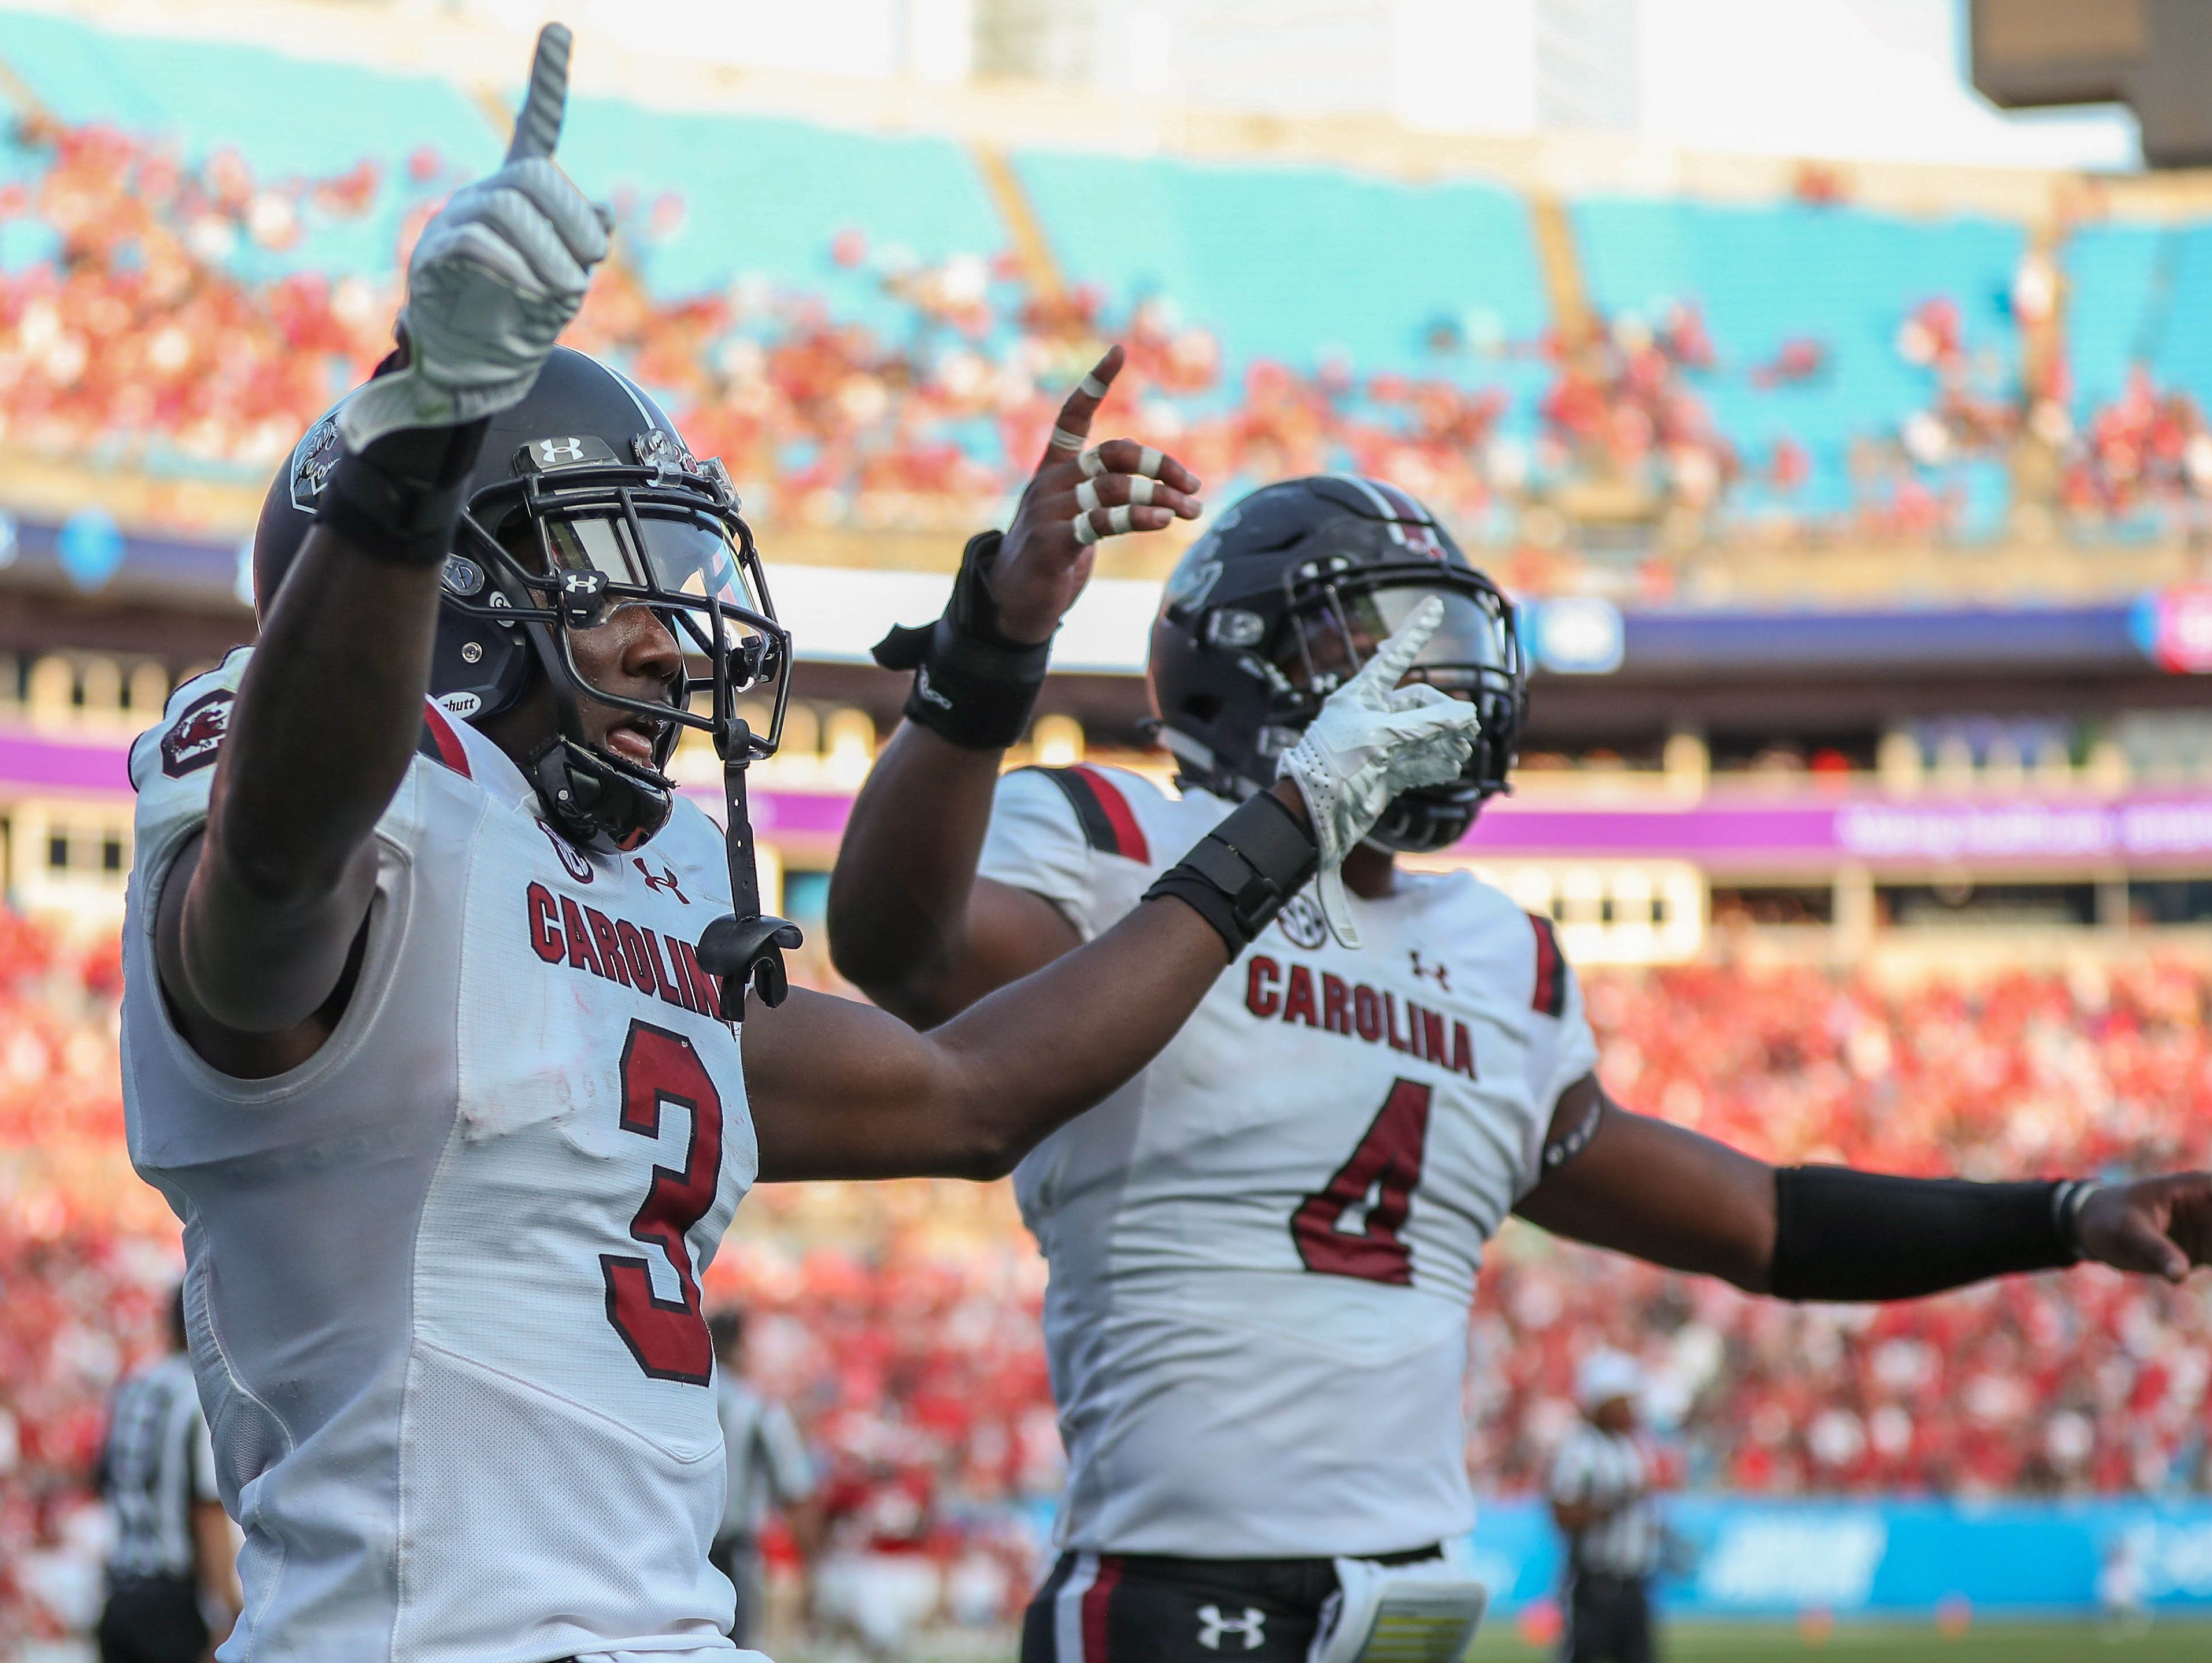 South Carolina Gamecocks defensive back Chris Lammons (3) and linebacker Bryson Allen-Williams (4) celebrate the win over the North Carolina State Wolfpack during the second half at Bank of America Stadium.